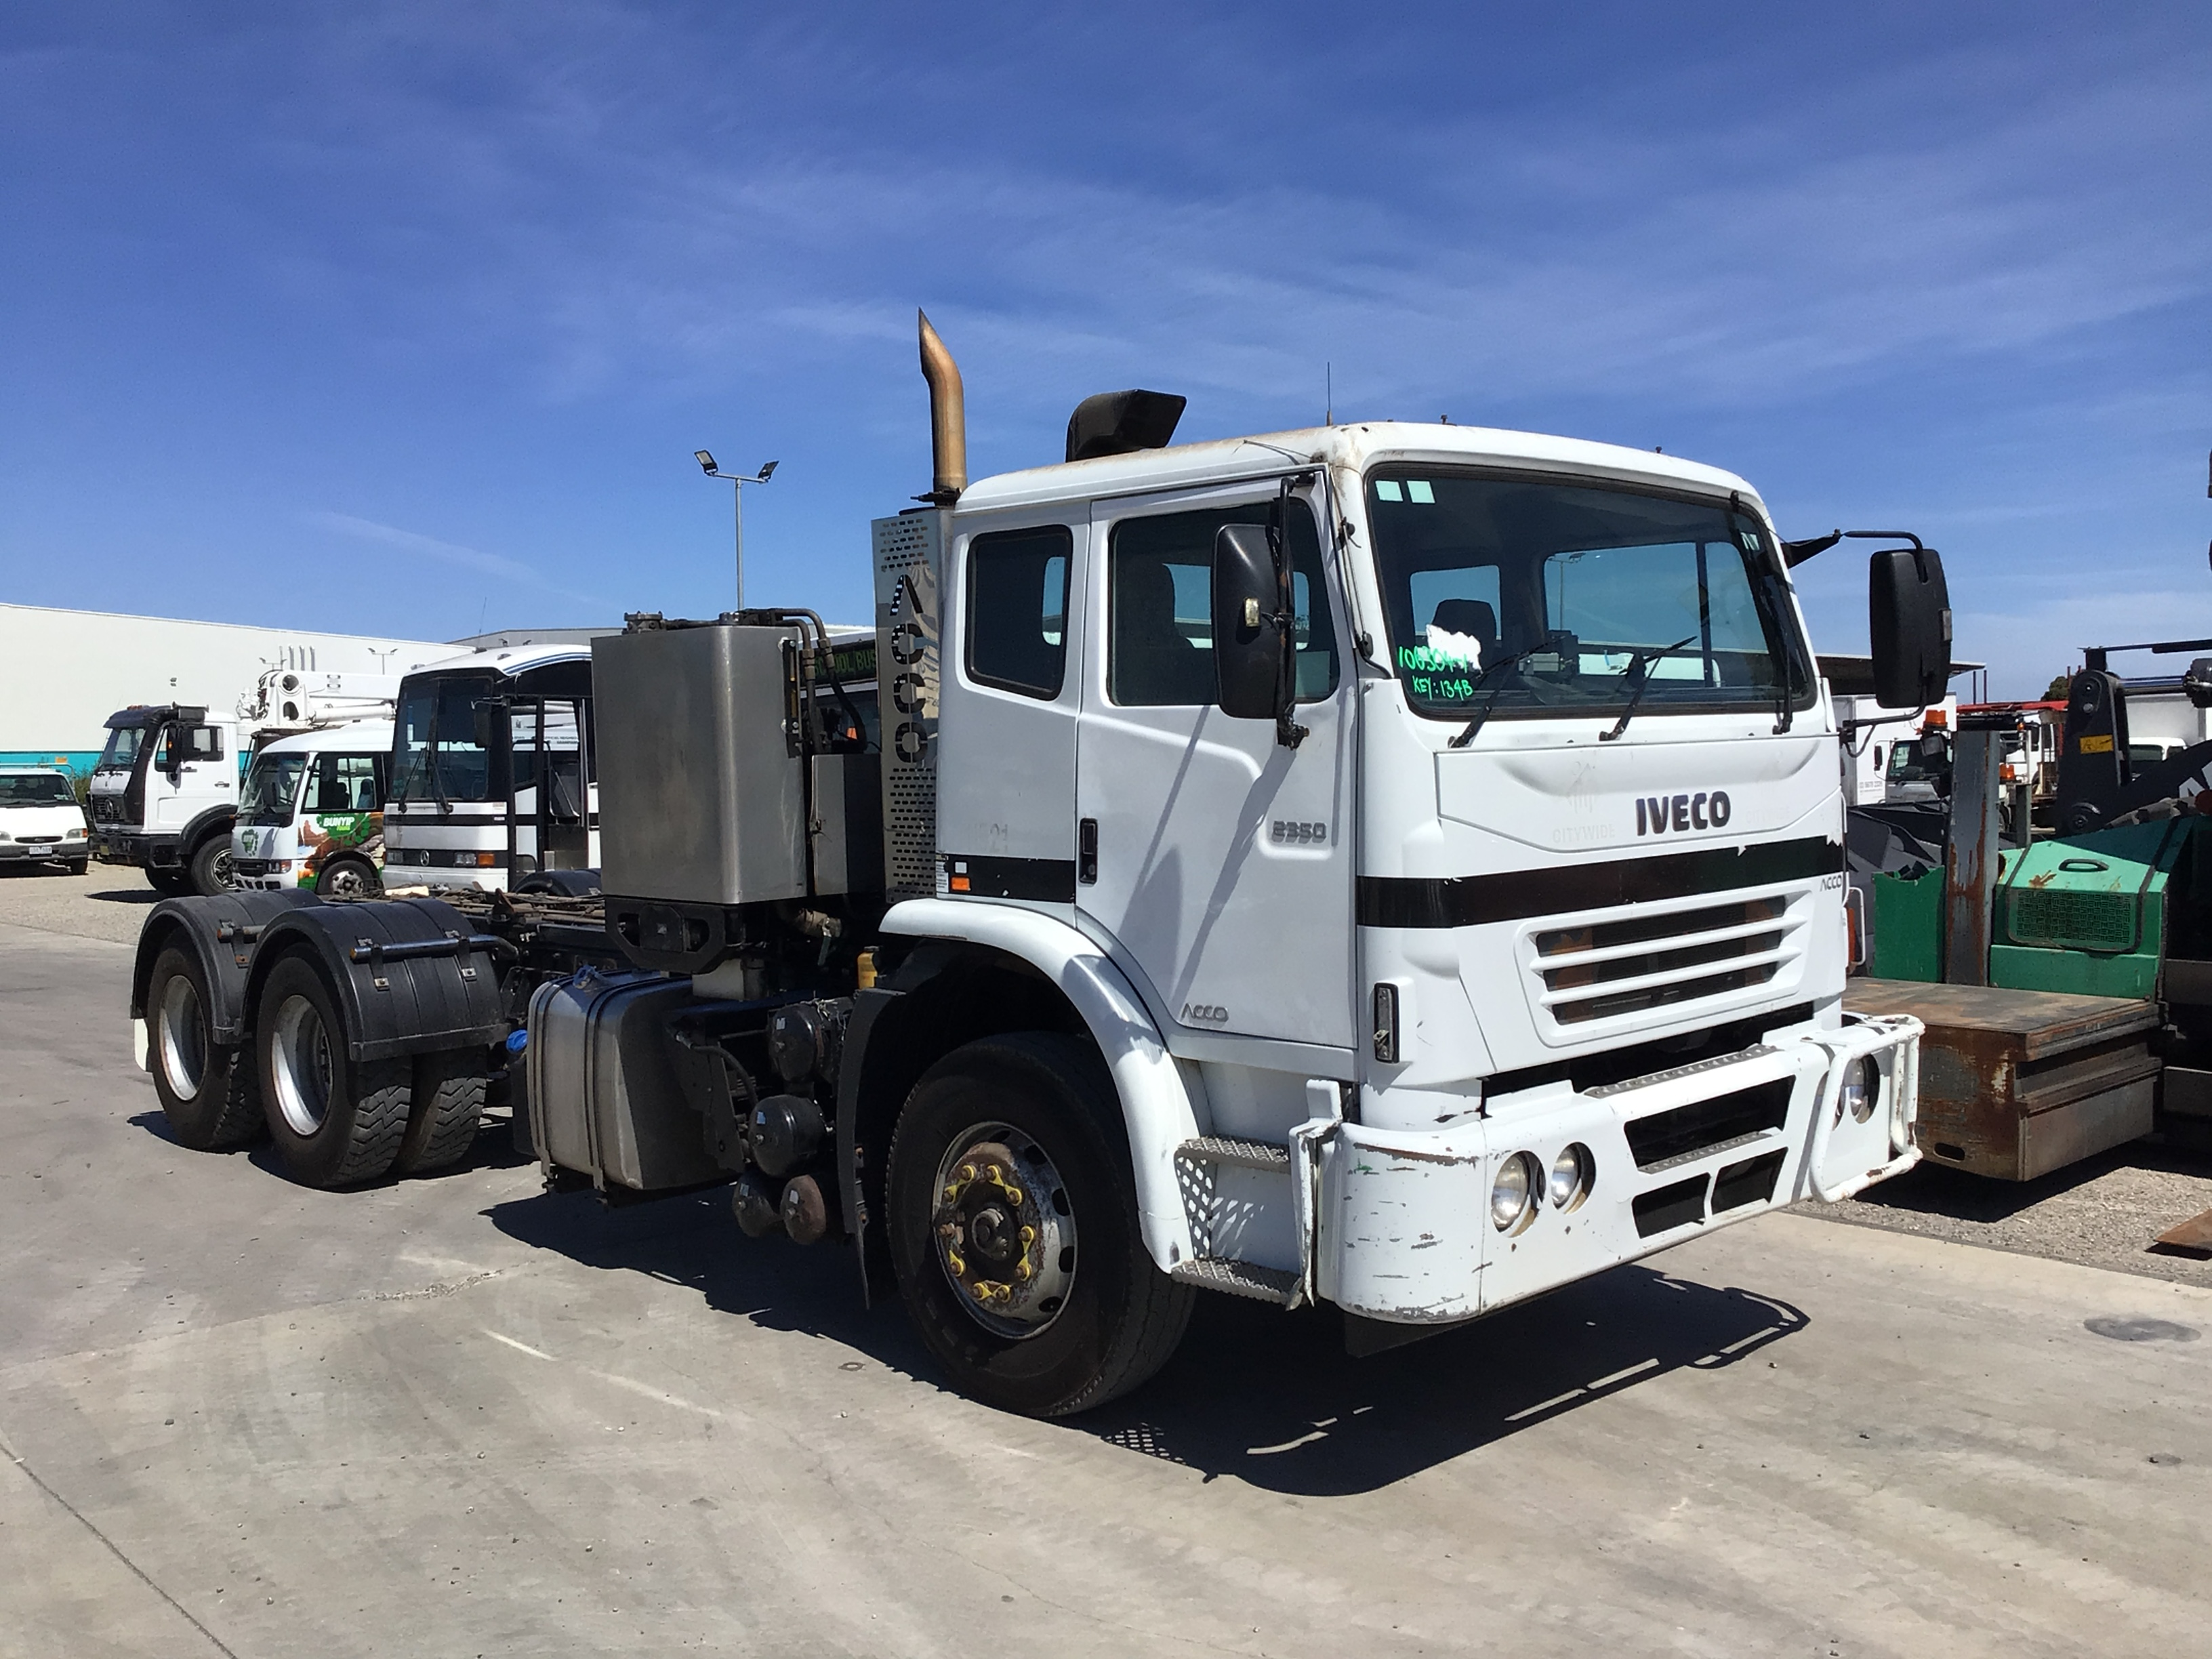 2011 Iveco 2350 6 x 4 Cab Chassis Truck